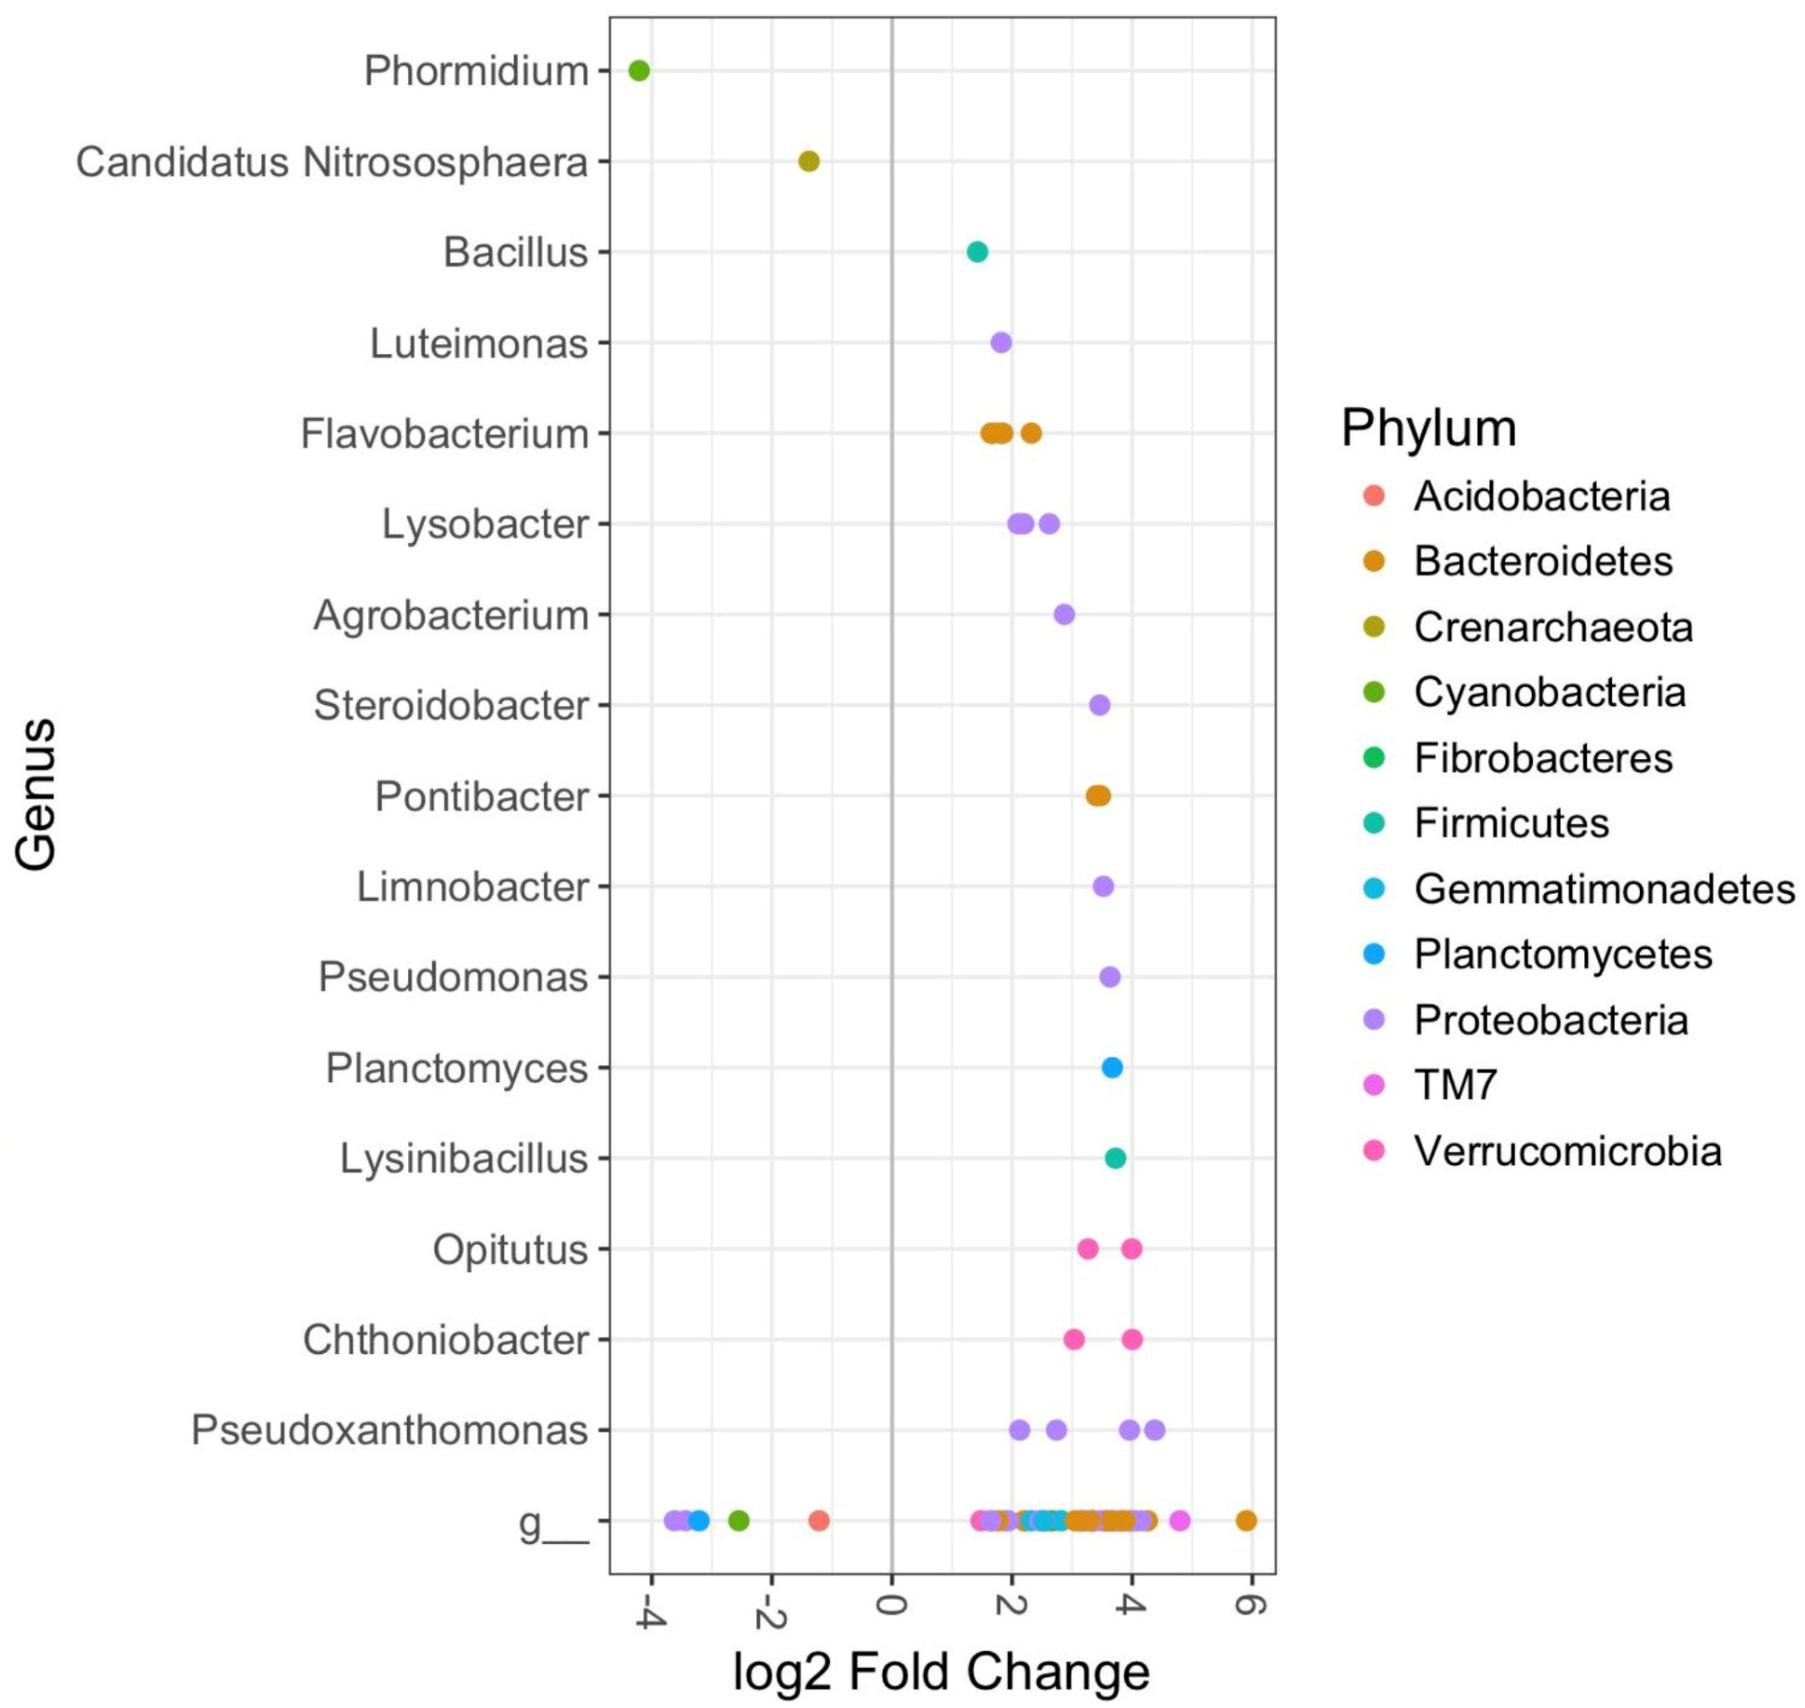 Frontiers | Rhizosphere Bacterial Communities Differ According to